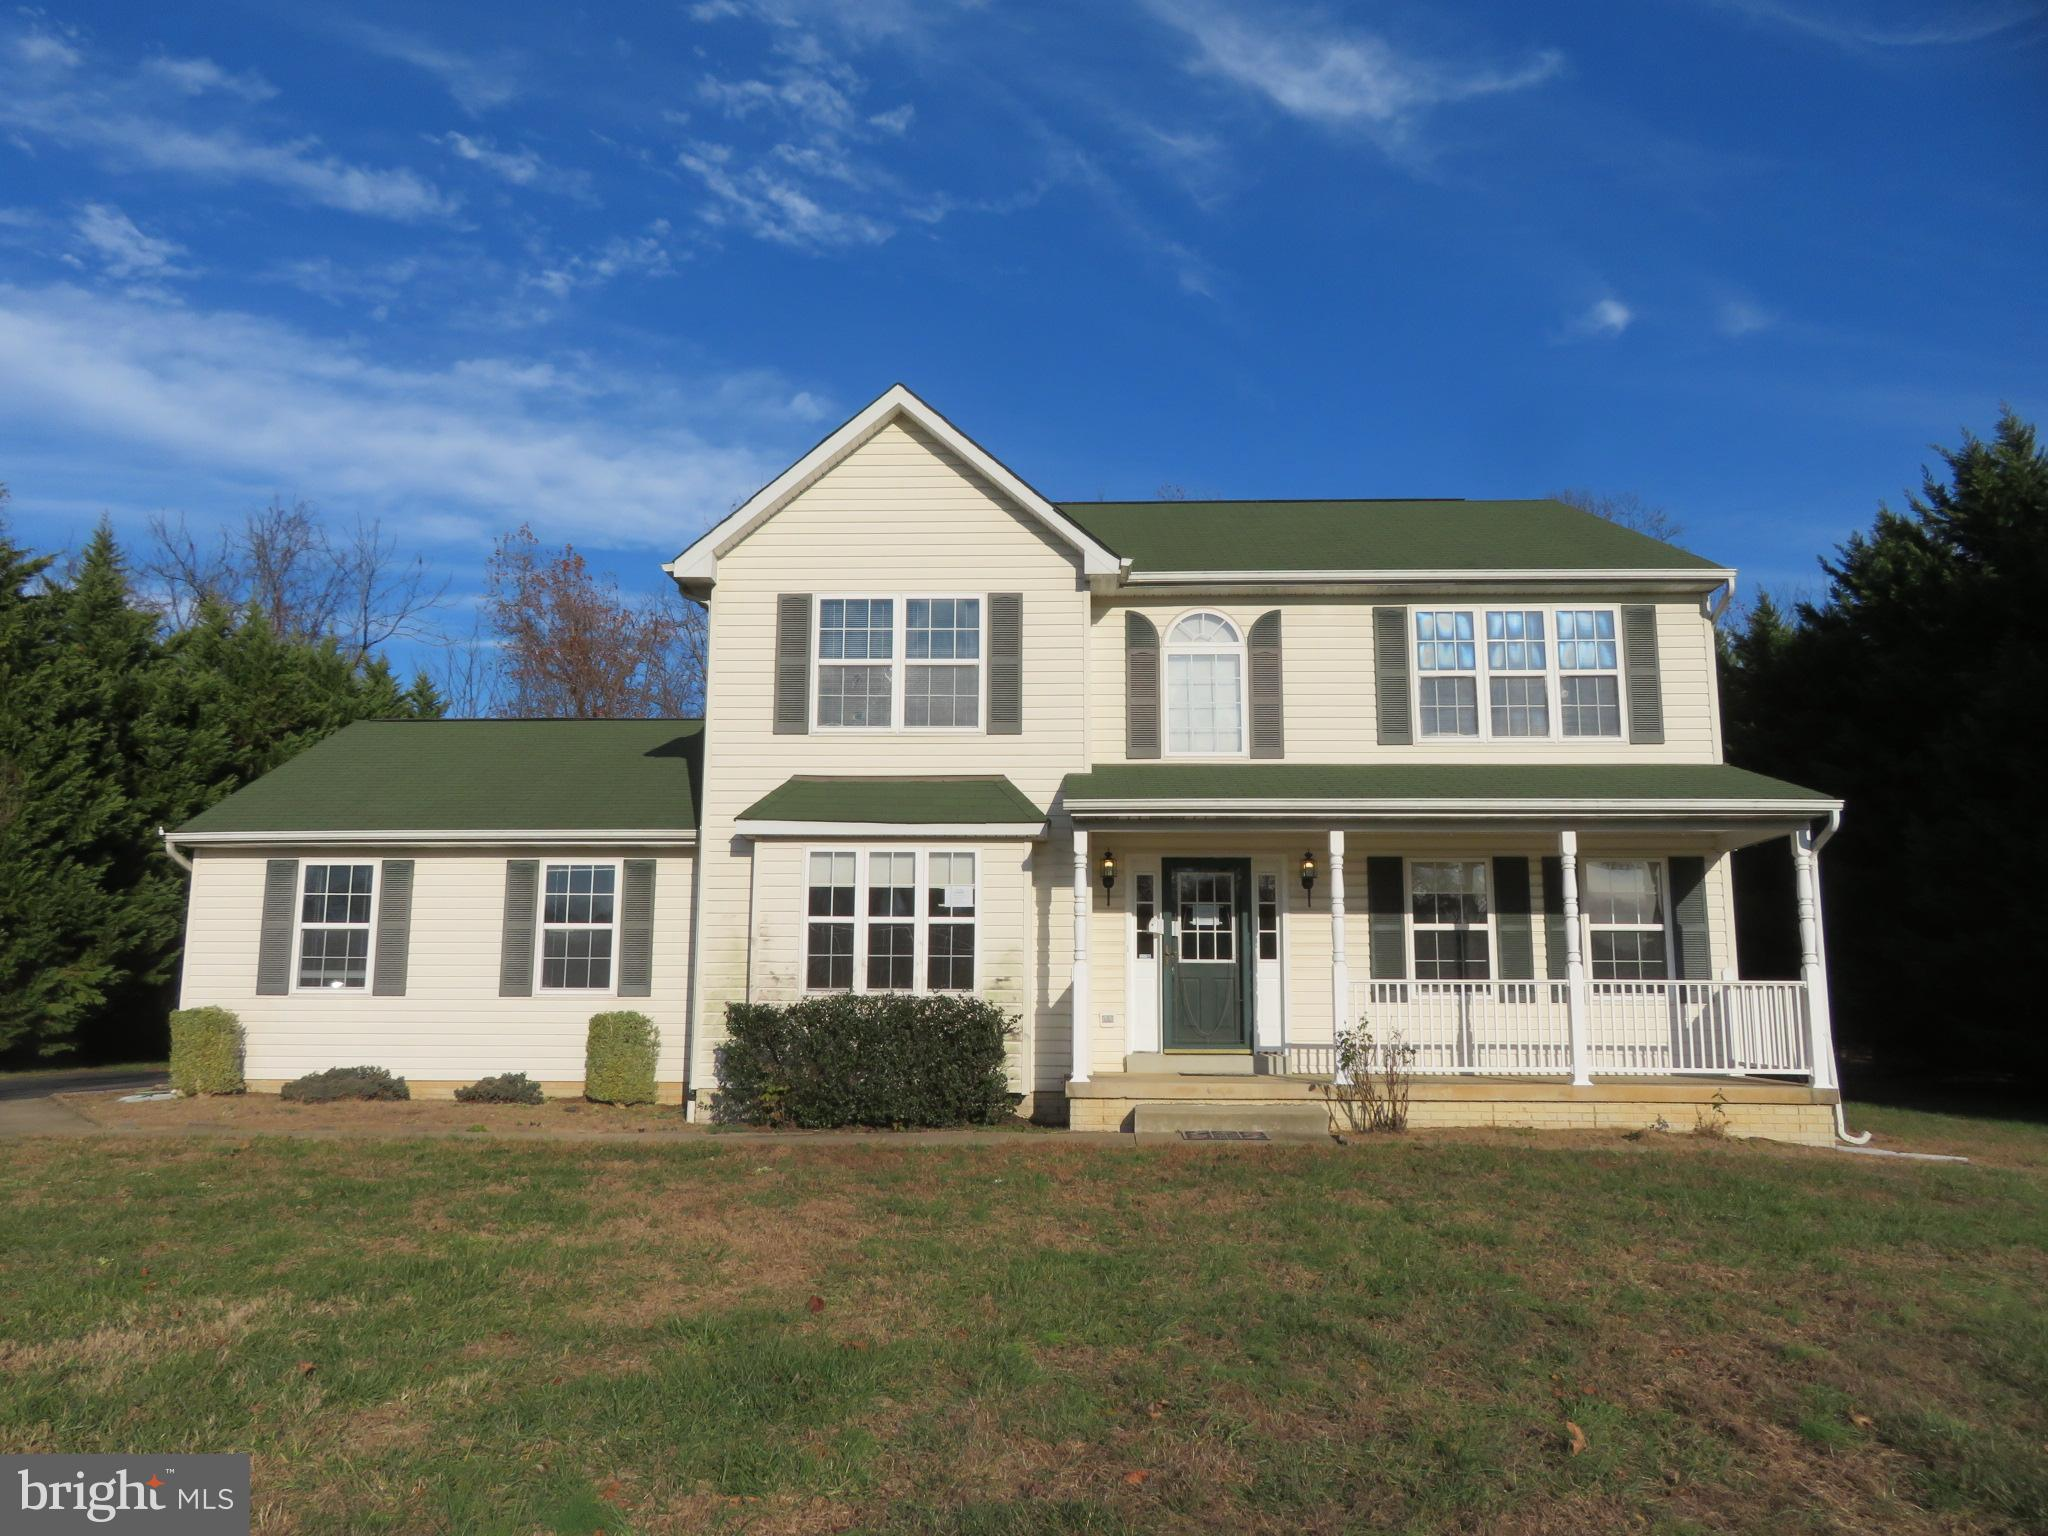 Great Value, Two story Colonial, 3 bedrooms, 2.5 baths, with unfinished basement. Spacious main floo